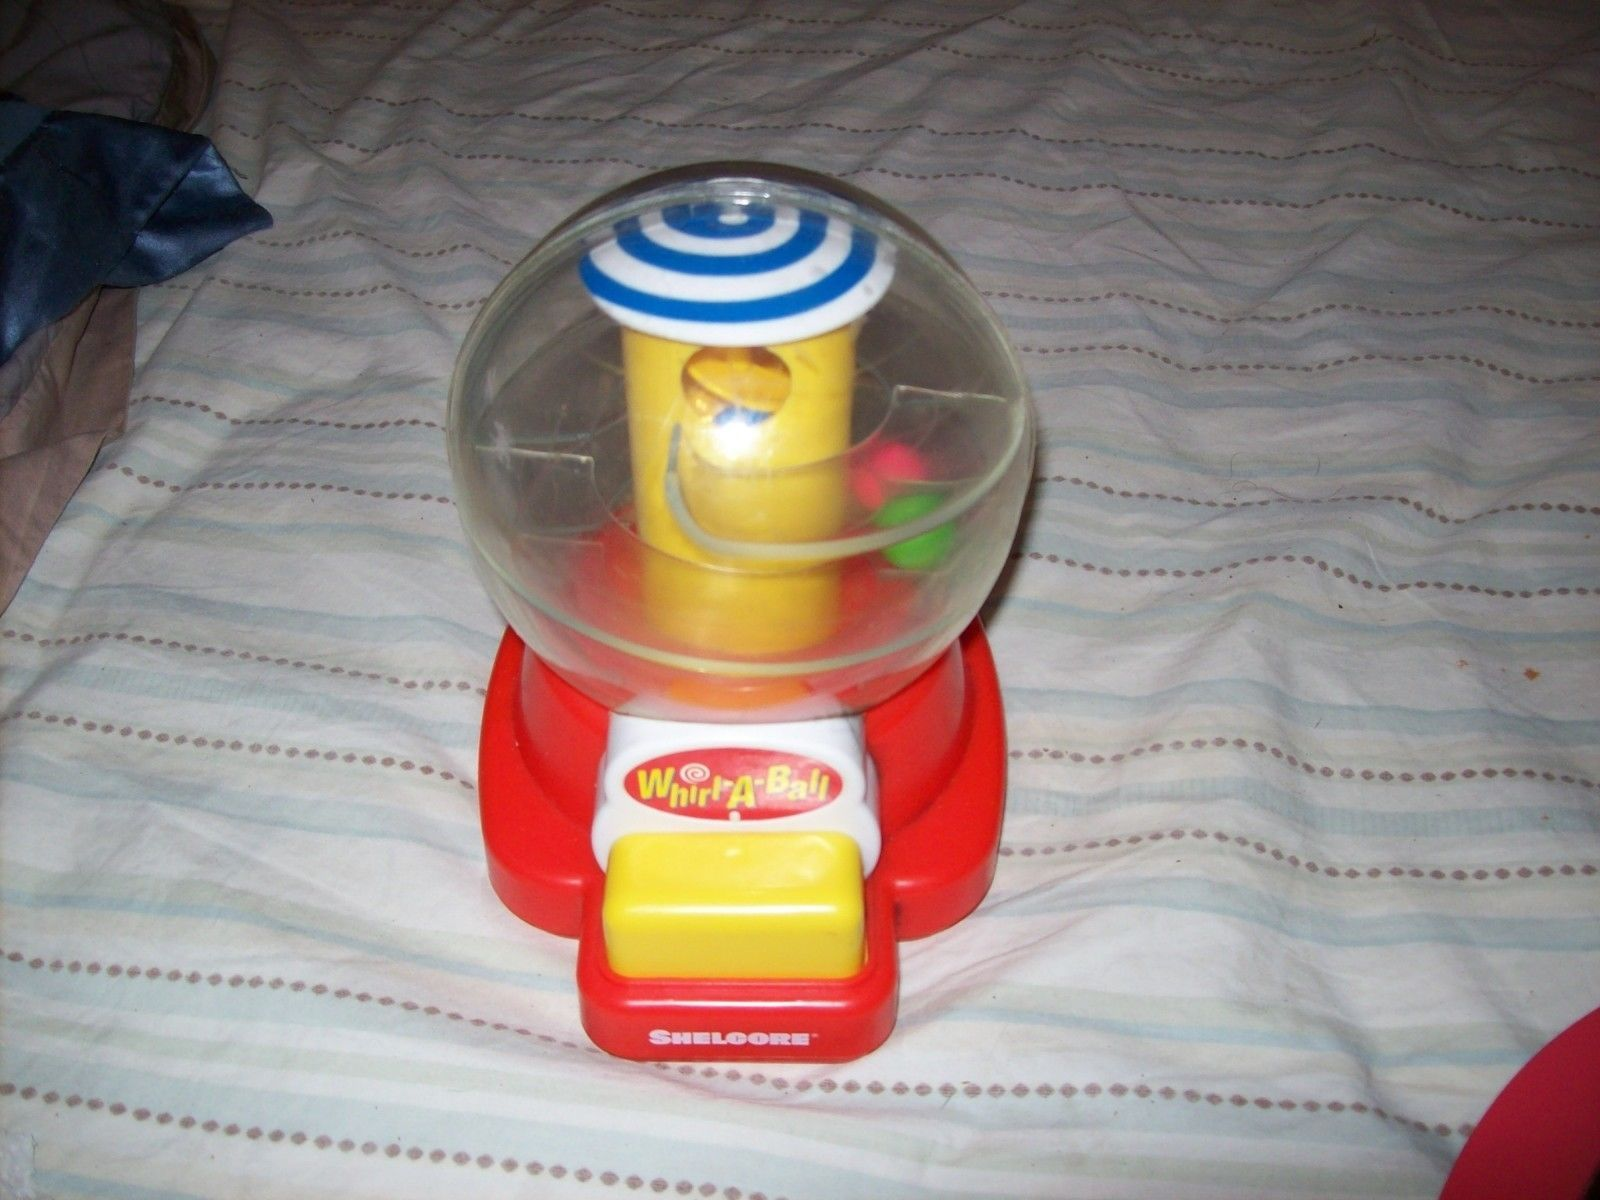 Shelcore Baby Toy Whirl A Ball Gumball Roller Whirl-A-Ball 1993 Baby Push Toy